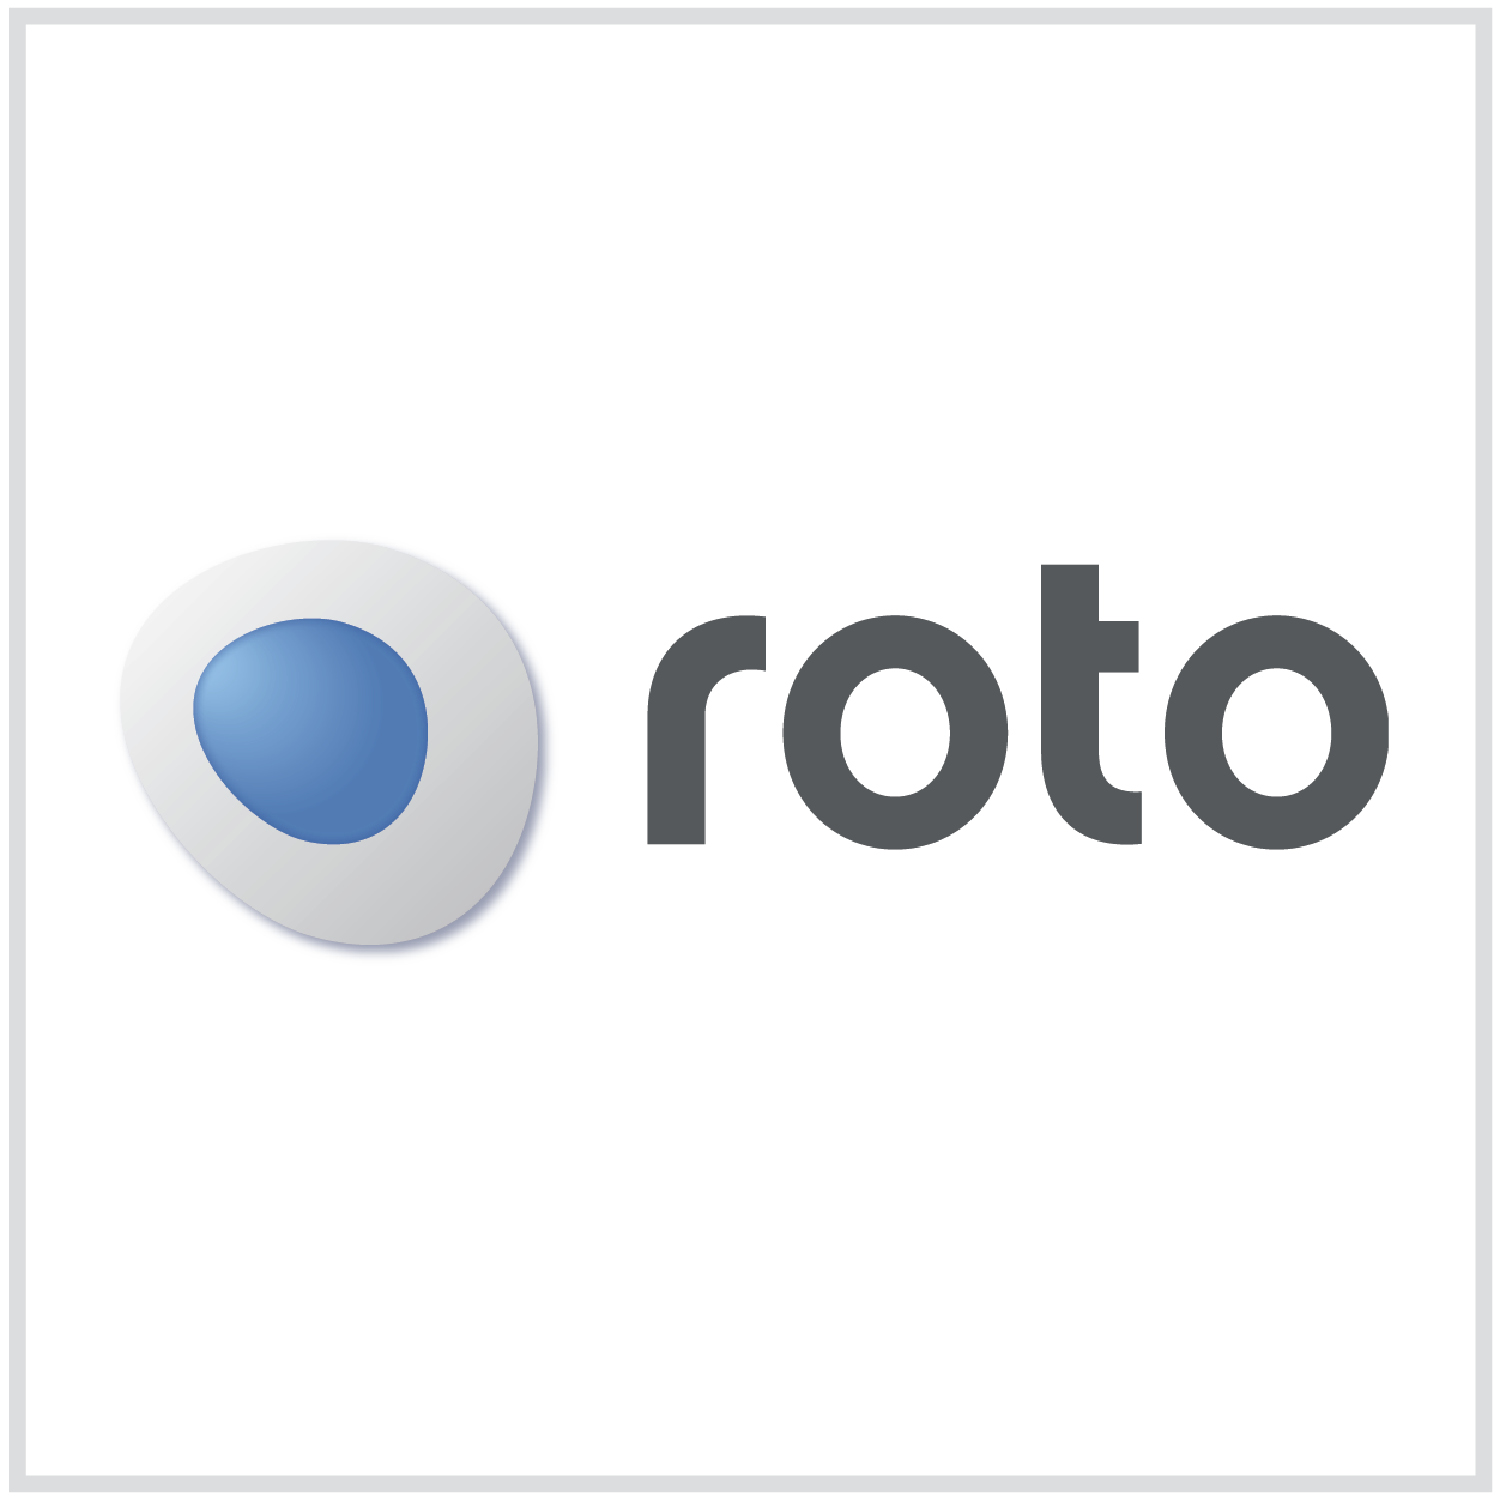 Roto  Roto is a full-service design and production firm specializing in first-hand experiences for museums and entertainment venues. With an award-winning design team and our own in-house exhibit engineering and fabrication facility, our work includes interactive gadgets, immersive themed environments, content-rich interpretive exhibits, dramatic story-driven attractions, and one-of-a-kind technology installations. Roto is led by a team of five principals with more than 18 years of experience as a closely-knit team, originally as the exhibit department at COSI (the renowned science museum in Columbus). Roto's extraordinary growth over the last decade is a testament to its visitor-centered values and high standards of service, honed by many years of operational experience. Unique in the industry, Roto today is both an A-list design firm and a compelling design-build resource for family-oriented museum and entertainment destinations internationally.